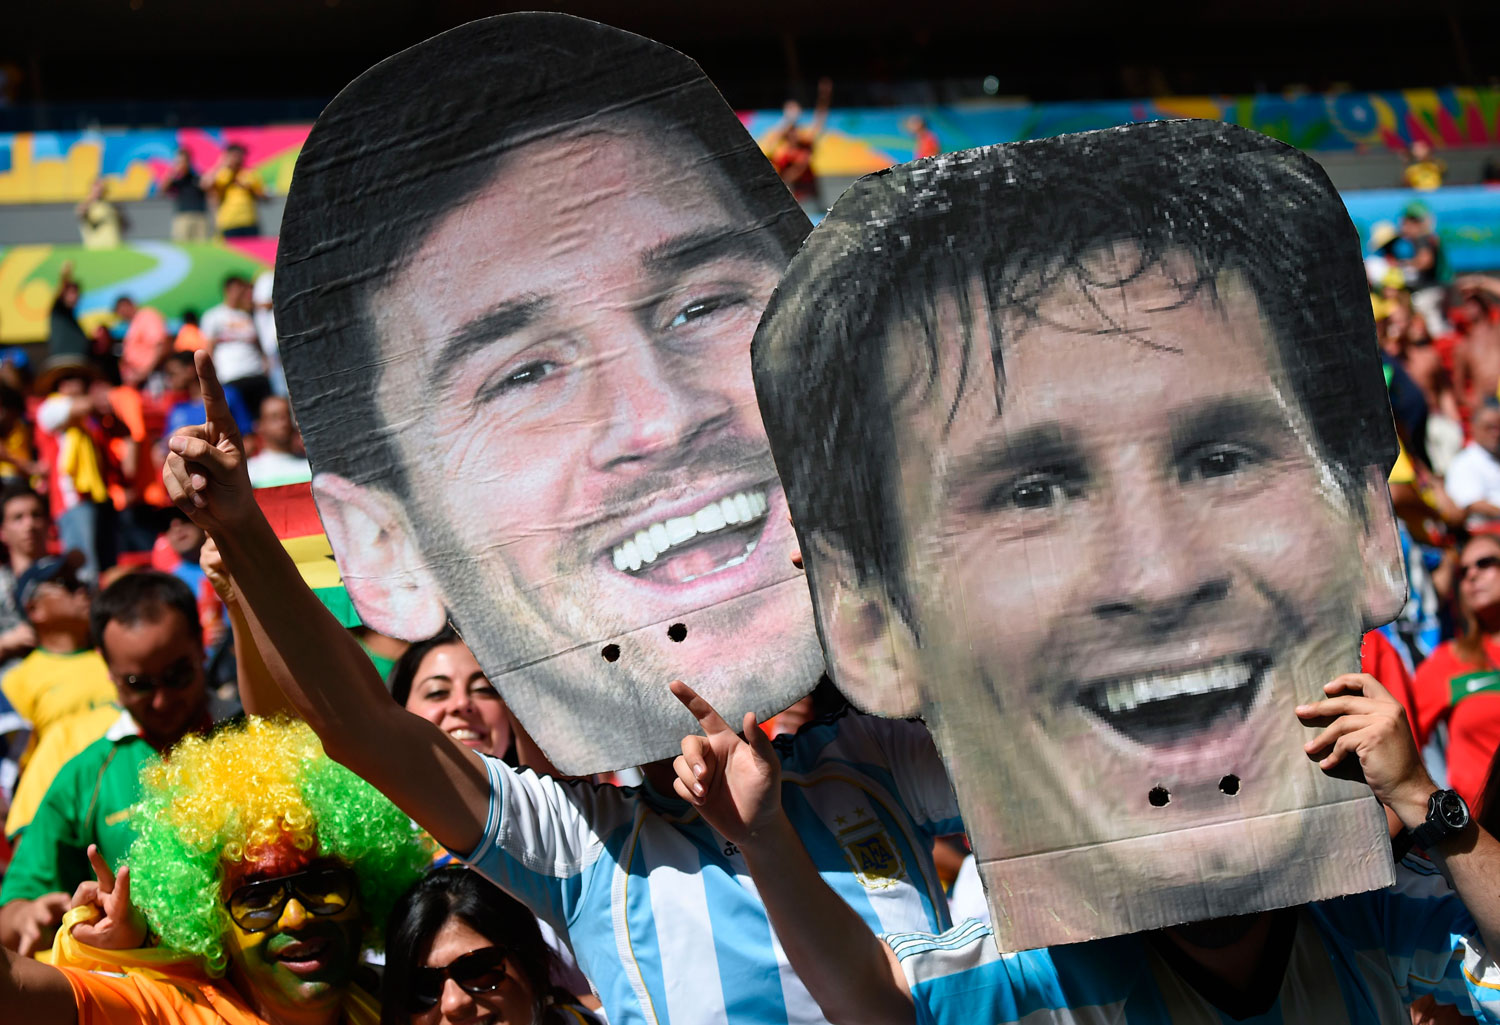 Argentina fans hold up portraits of Argentinian player Lionel Messi during the match between Portugal and Ghana at the Mane Garrincha National Stadium in Brasilia, Brazil on June 26, 2014.